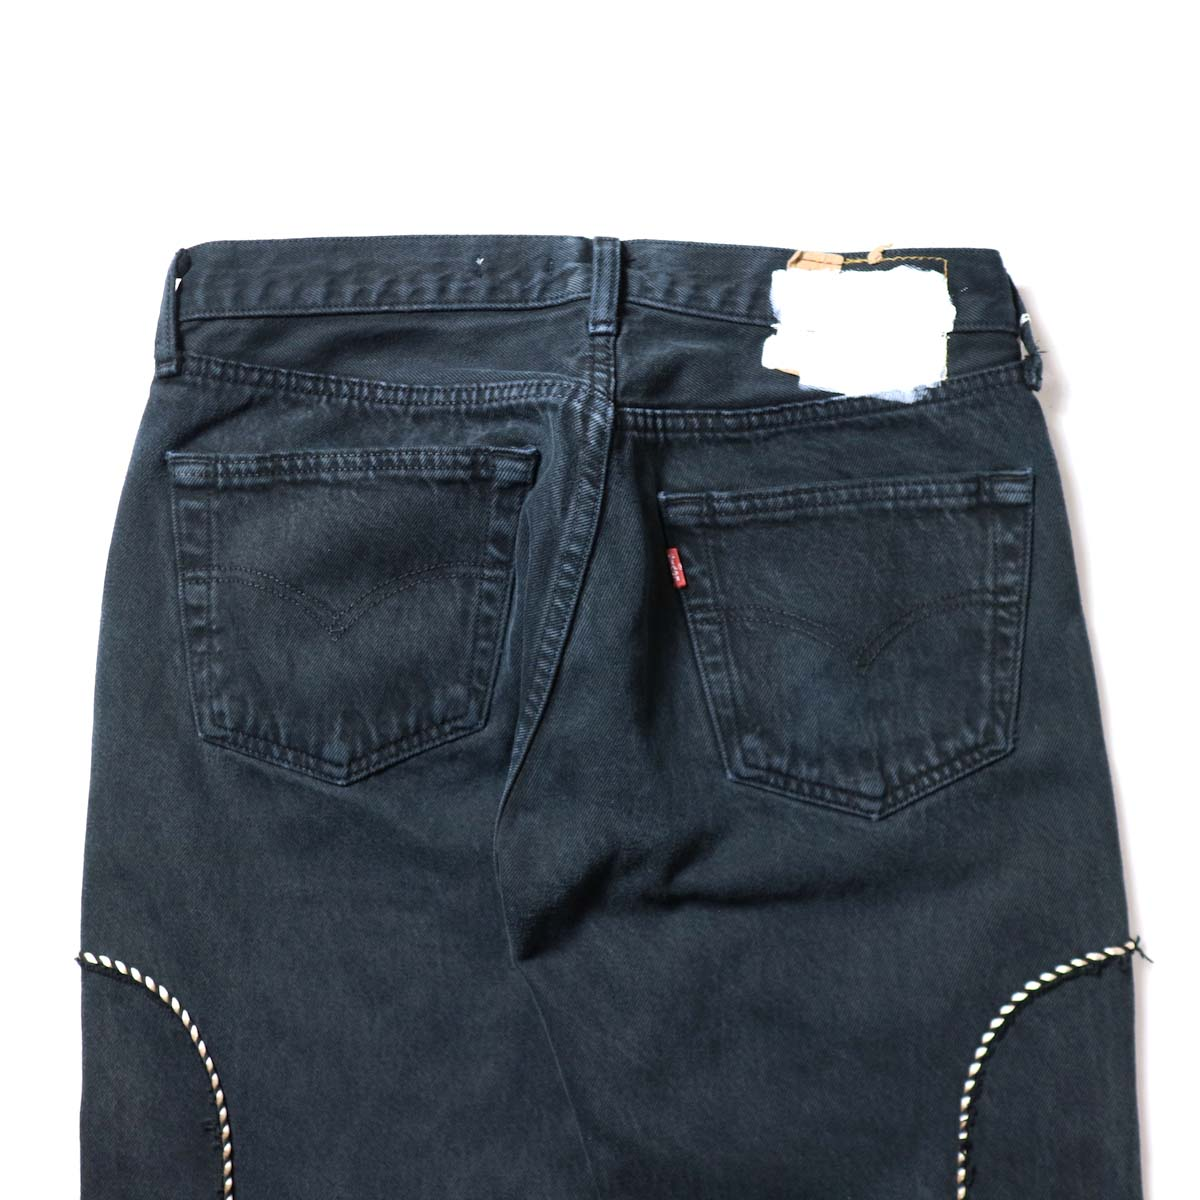 OLD PARK / Western Jeans Black (Msize-G)ヒップポケット